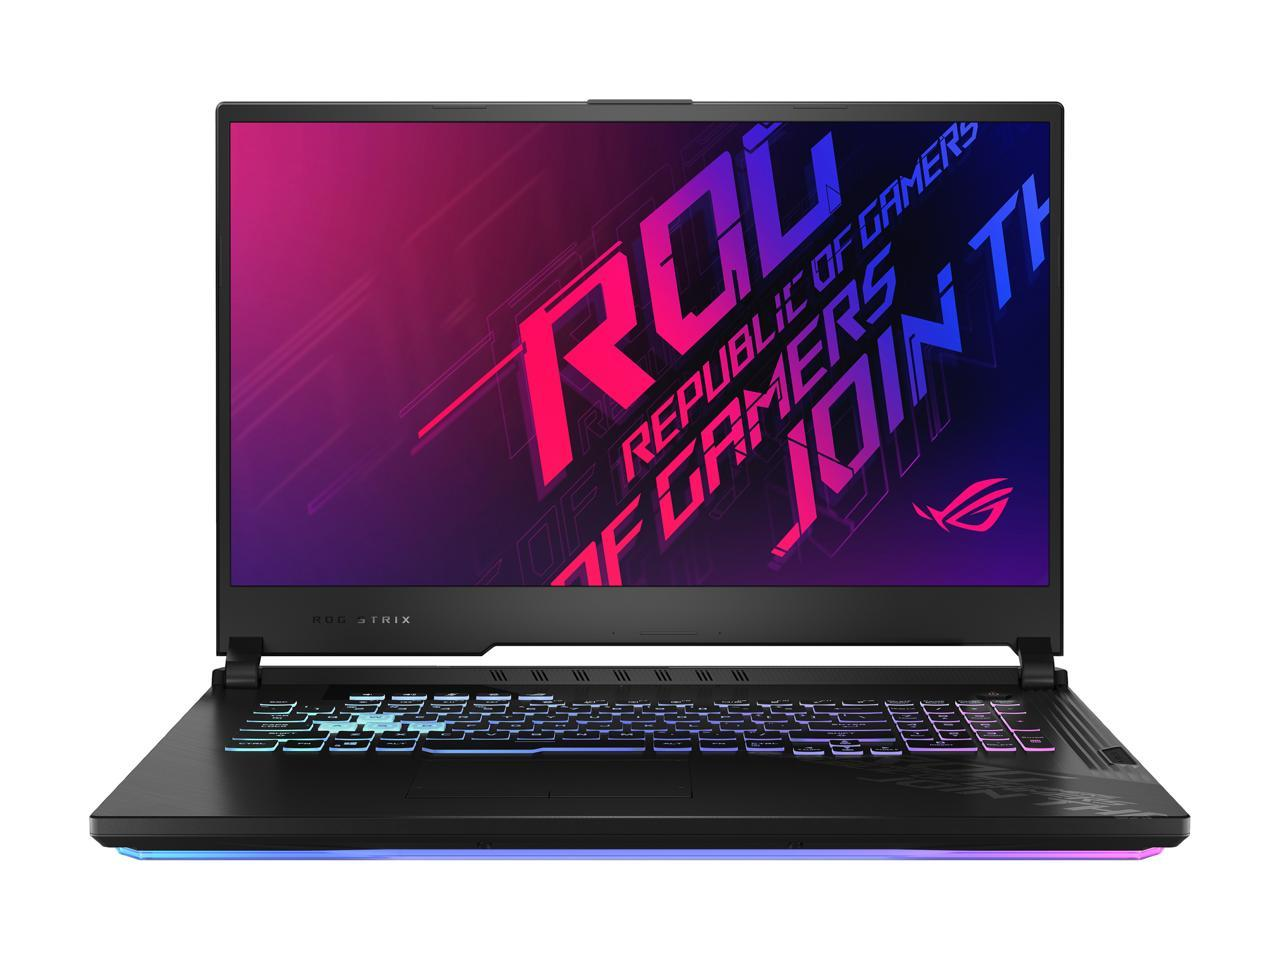 "ASUS ROG Strix G17 17.3"" Intel Core i7-10750H GeForce RTX 2070 16GB DDR4 RAM 512GB SSD Gaming Laptop, G712LW-ES74"